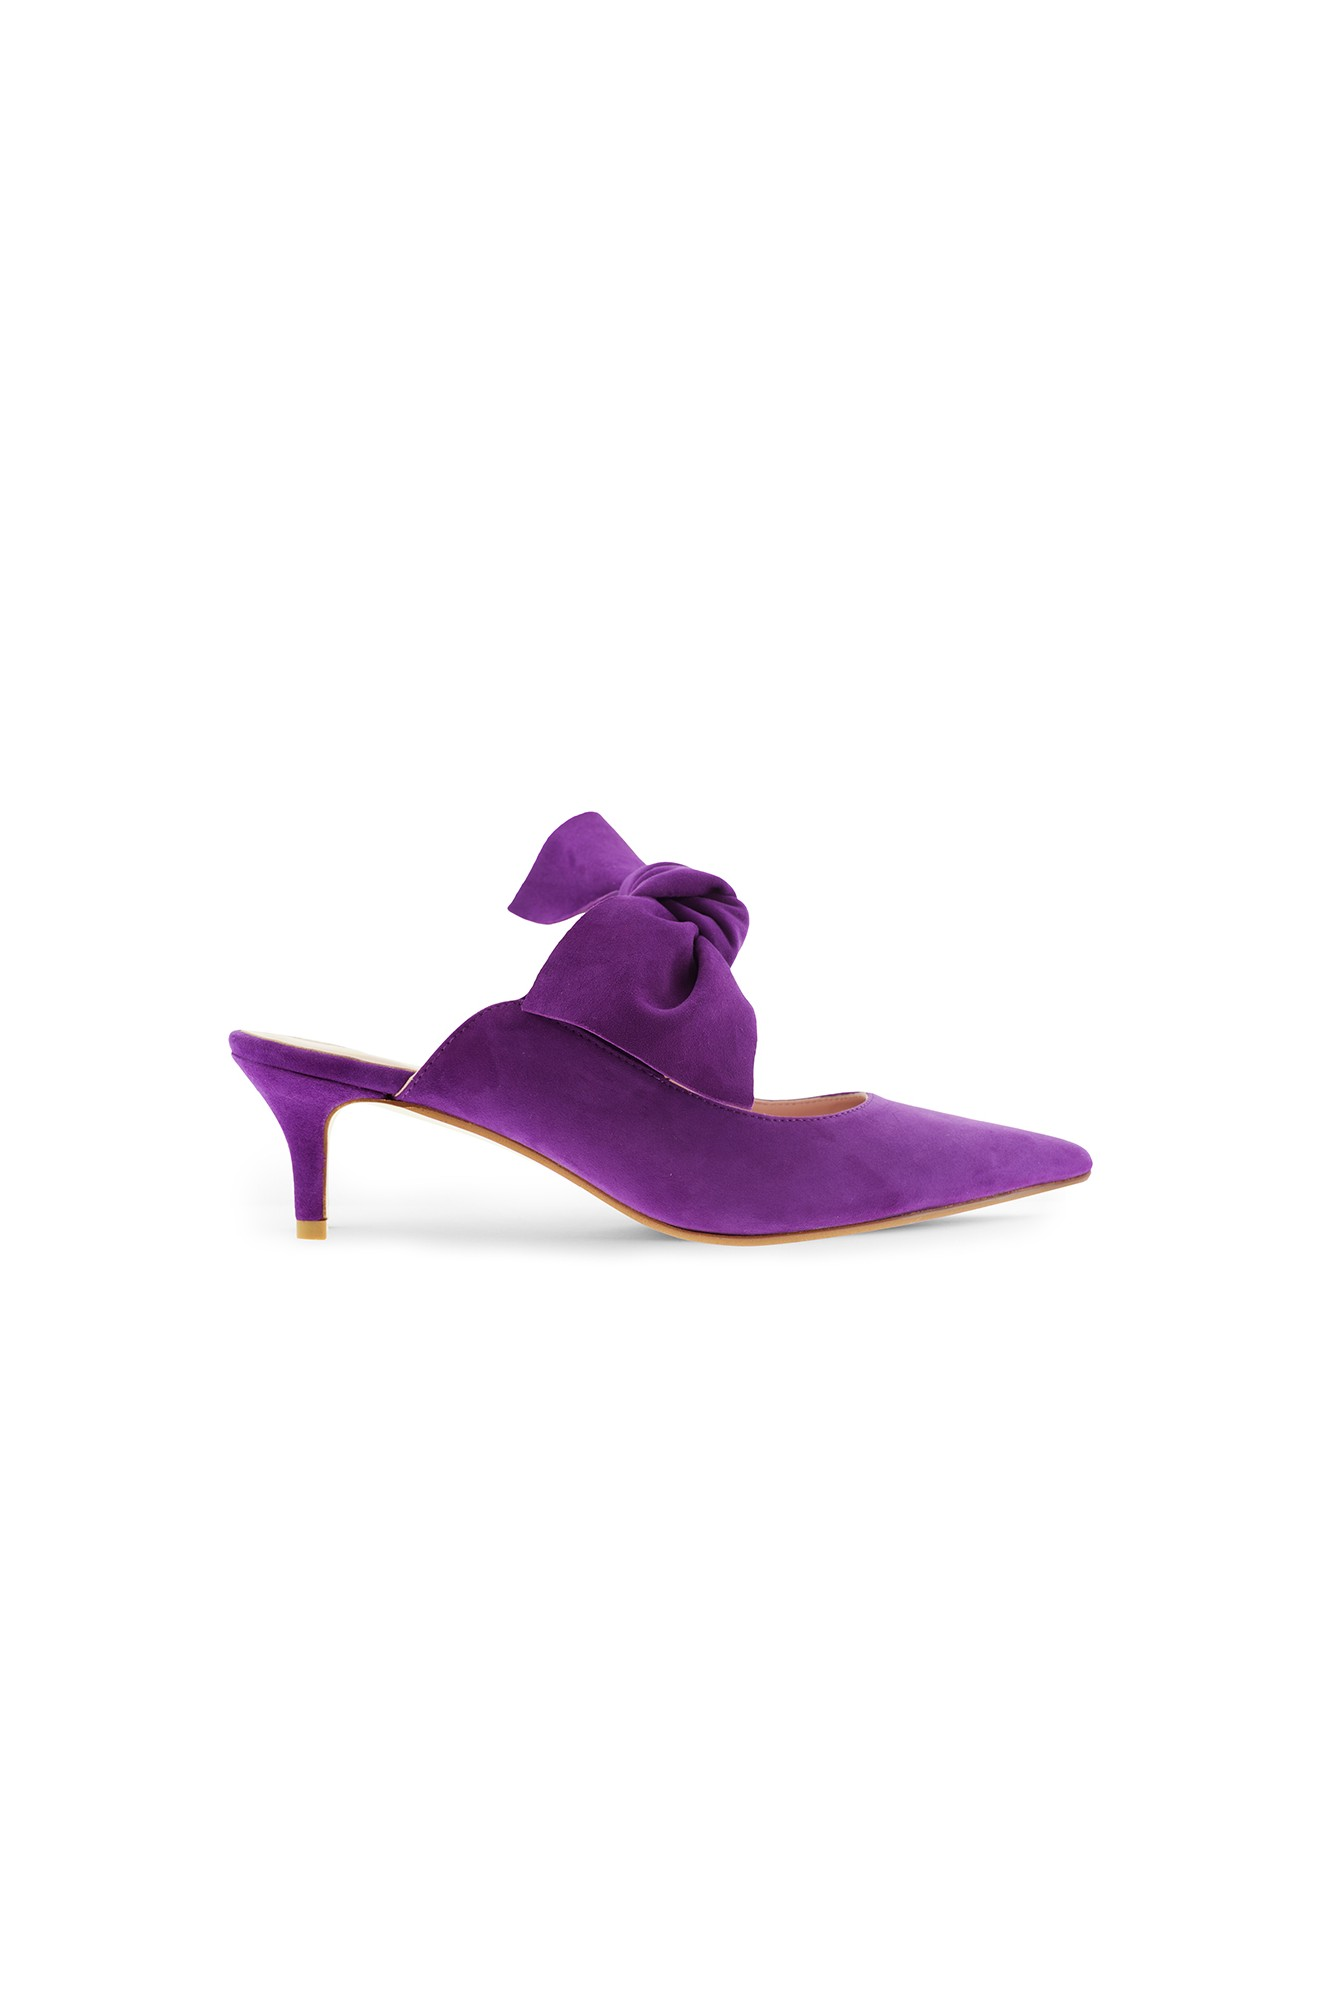 LOLA PURPLE SHOES